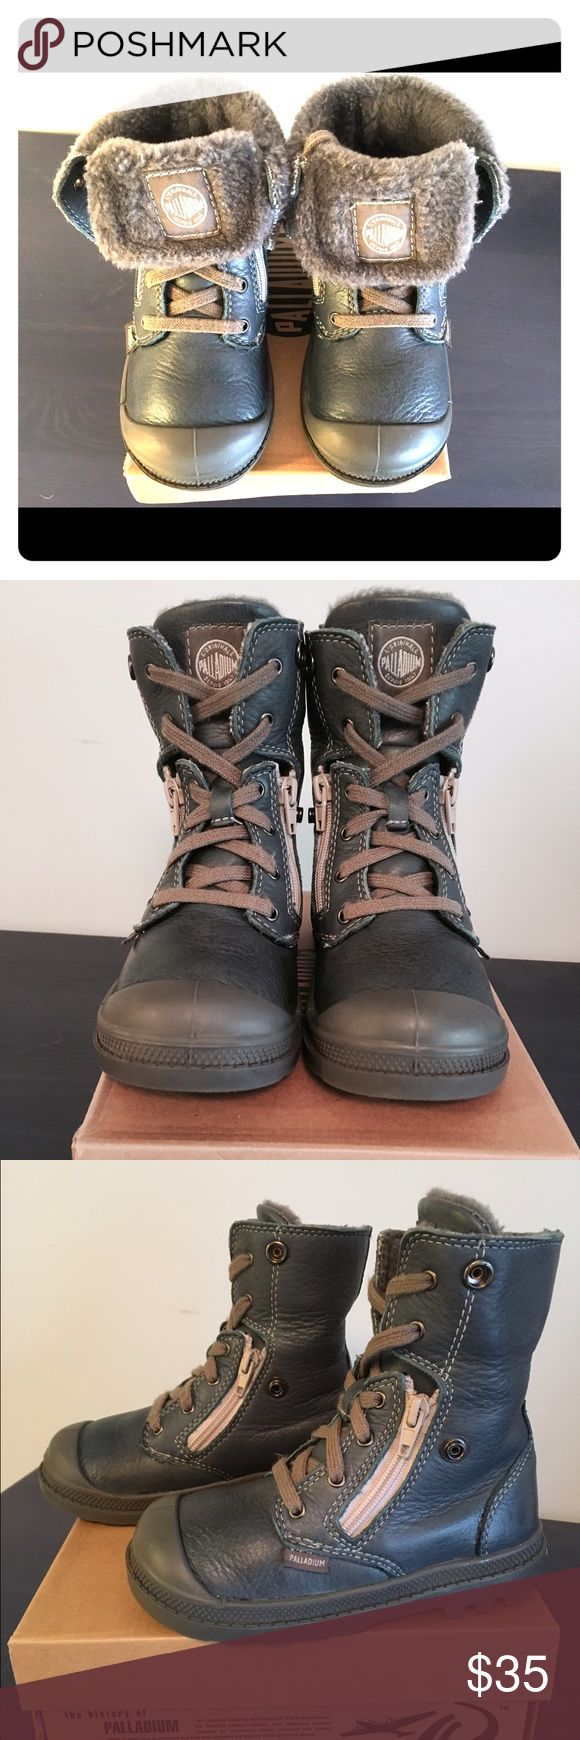 Palladium toddler winter boots (boys/girls) Like new condition. Leather boots with faux fur lining; light and comfortable. Unisex style. Palladium Shoes Boots